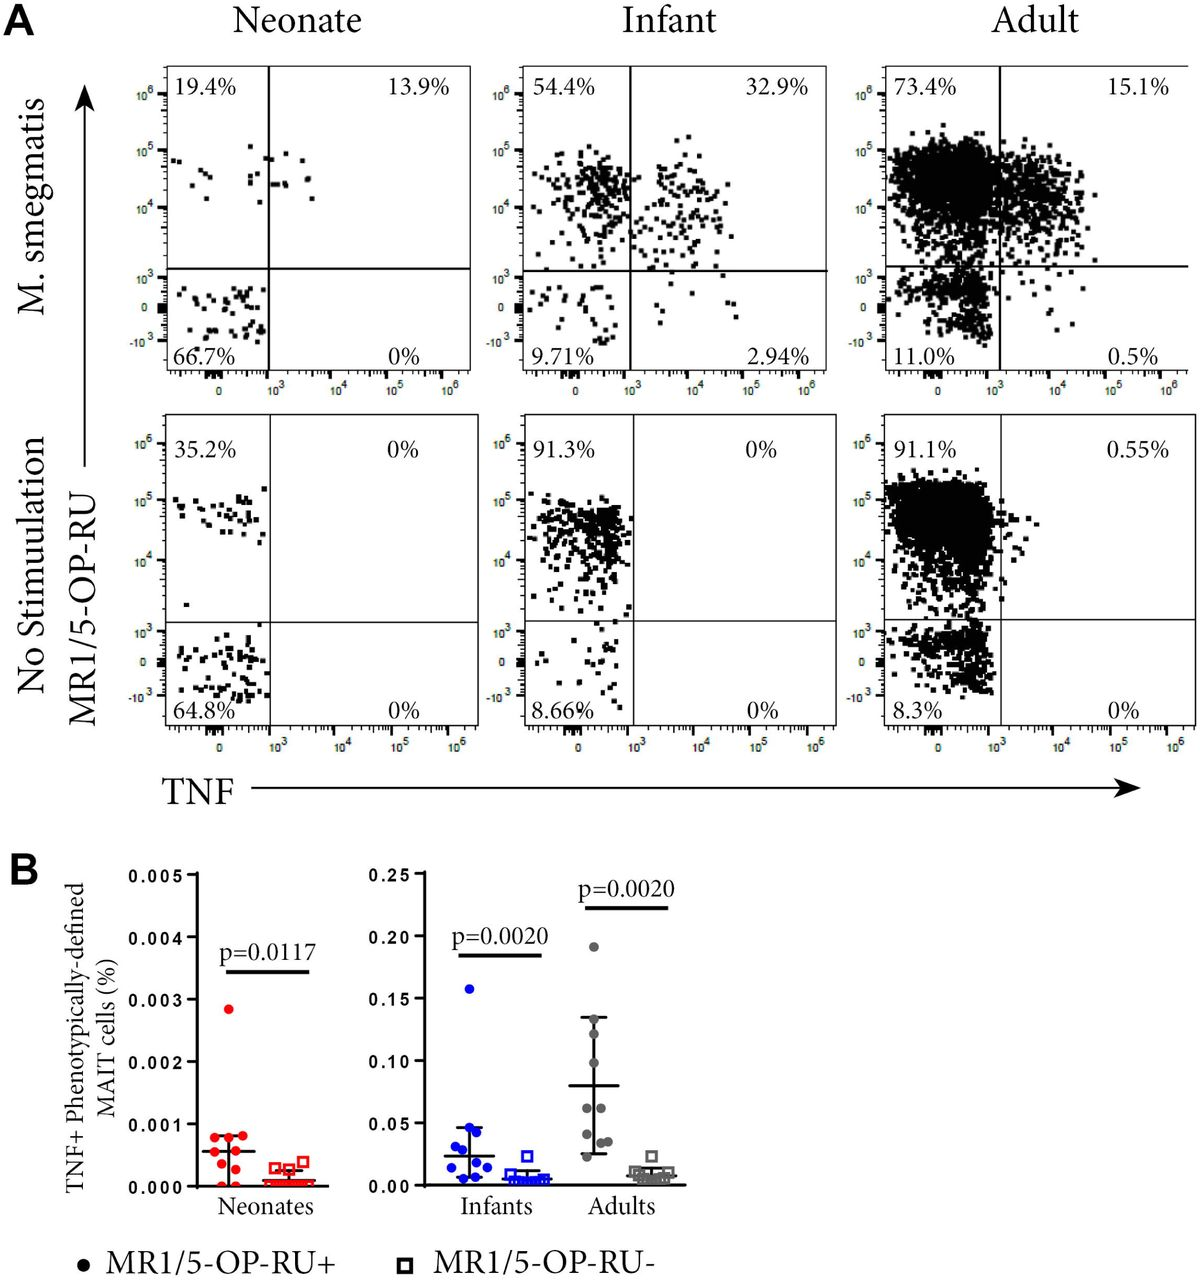 Functional analysis of MAIT cells in individuals of different ages. <t>PBMC</t> or CBMC from the US cohort were incubated overnight with M. smegmatis -infected A549 cells or uninfected A549 cells and then stained with the MR1-5-OP-RU or MR1/6FP tetramers, followed by staining with a live/dead discriminator and antibodies to TCRγδ, CD3, CD4, CD8, TRAV1-2, CD26 and CD161. <t>ICS</t> was then performed and the cells stained for TNF. A . Dot plots showing representative co-staining of live, TCRγδ - CD3 + TRAV1-2 + CD26 + CD161 + cells with MR1-5-OP-RU and TNF in M. smegmatis stimulated or unstimulated samples. The gating strategy is shown in Figure S3. Examples of the TNF response in a neonate, infant and adult are shown. B . Frequencies of functional, phenotypically-defined (CD3 + TRAV1-2 + CD26 + CD161 + ) MAIT cells that are MR1-5-OP-RU + or MR1-5-OP-RU - as a proportion of CD3 + TCRγδ - T cells. Horizontal lines depict the median and the error bars the 95% confidence interval. Wilcoxon-rank sum was used to test differences within the same cohort.